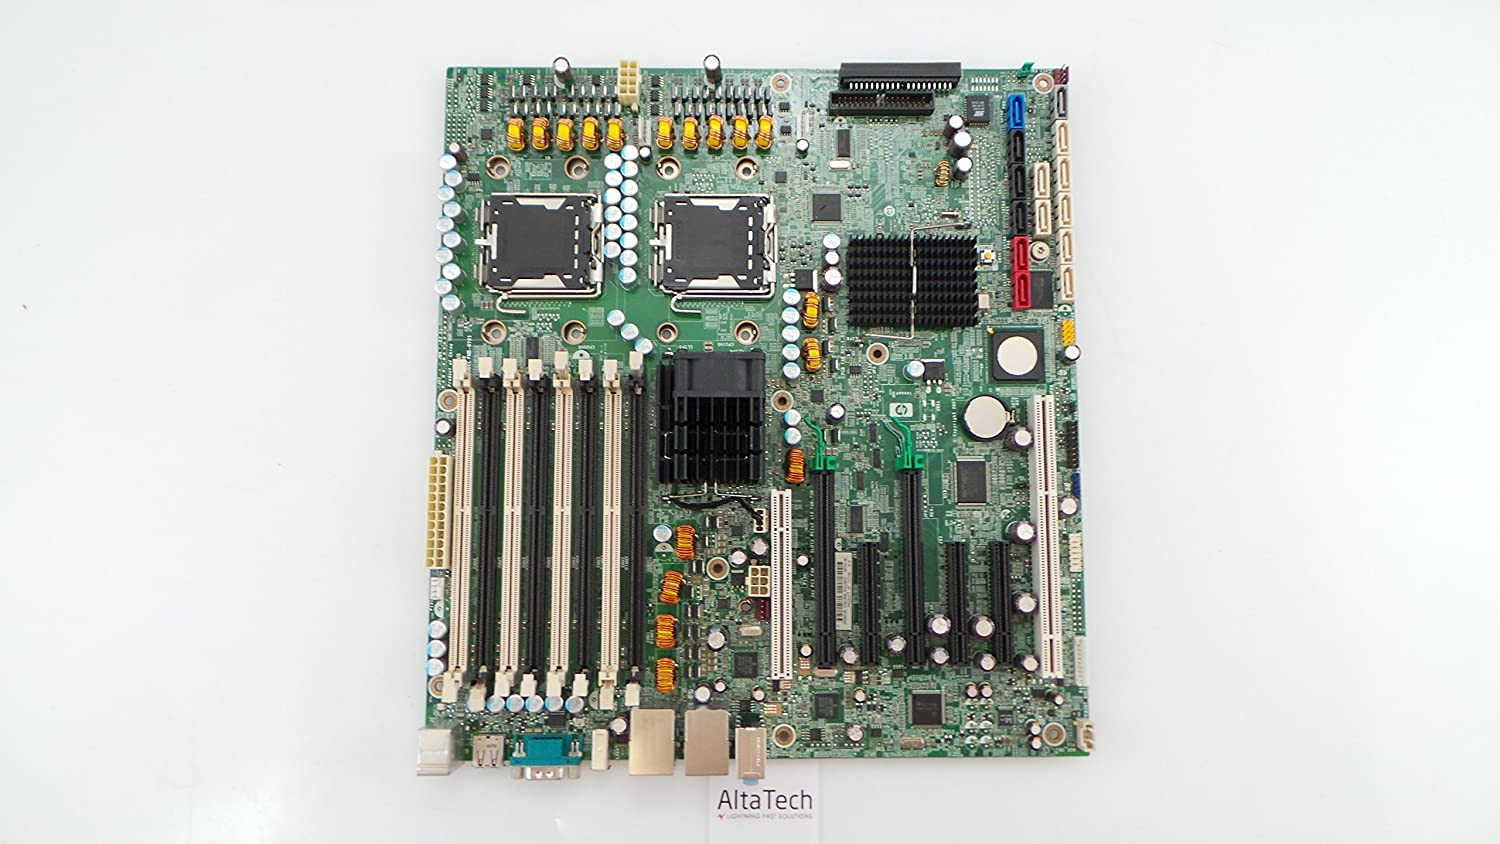 HP XW8600 LGA775 Dual CPU Server Motherboard 480024-001 439241-002 439241-004 US